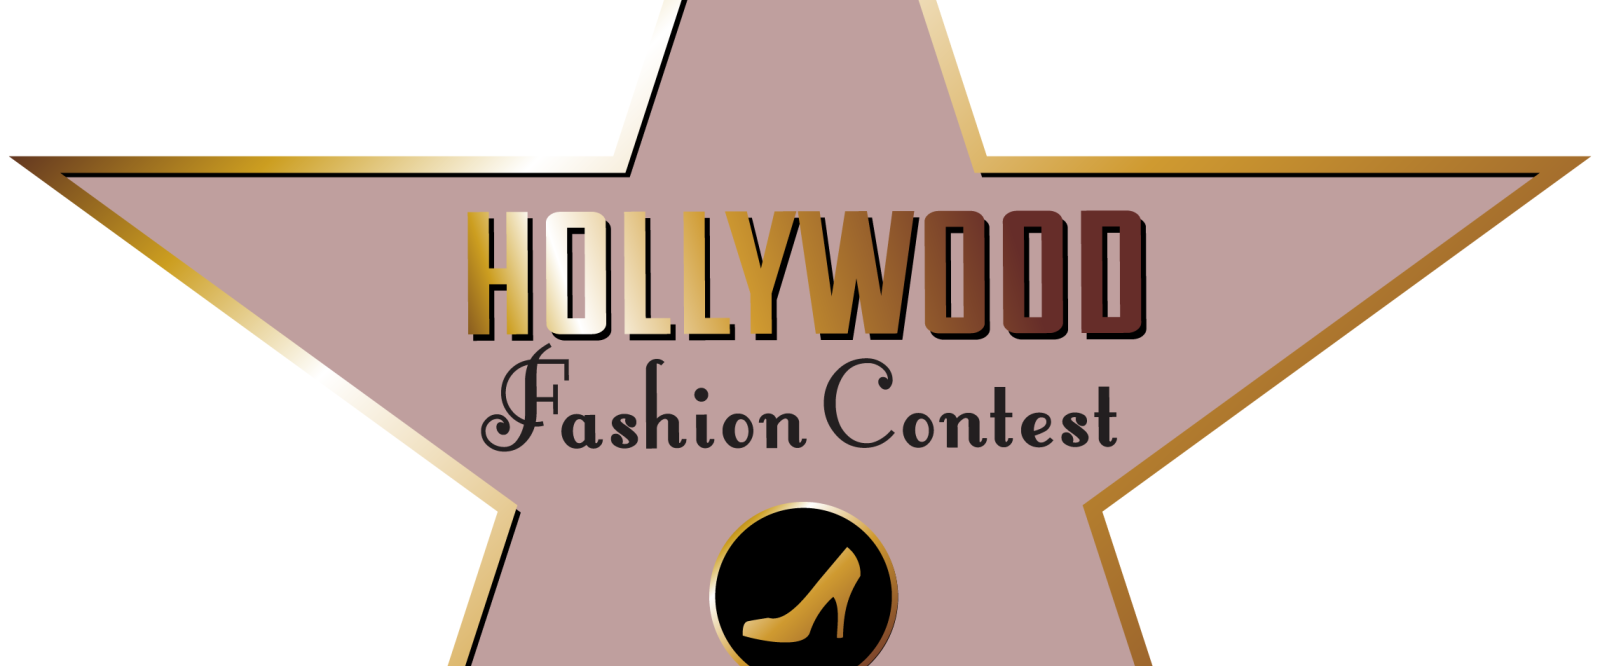 Photo of Del Mar's Inaugural Bing Crosby Season Kicks Off With Opening Day Vintage Hollywood Fashion Contest